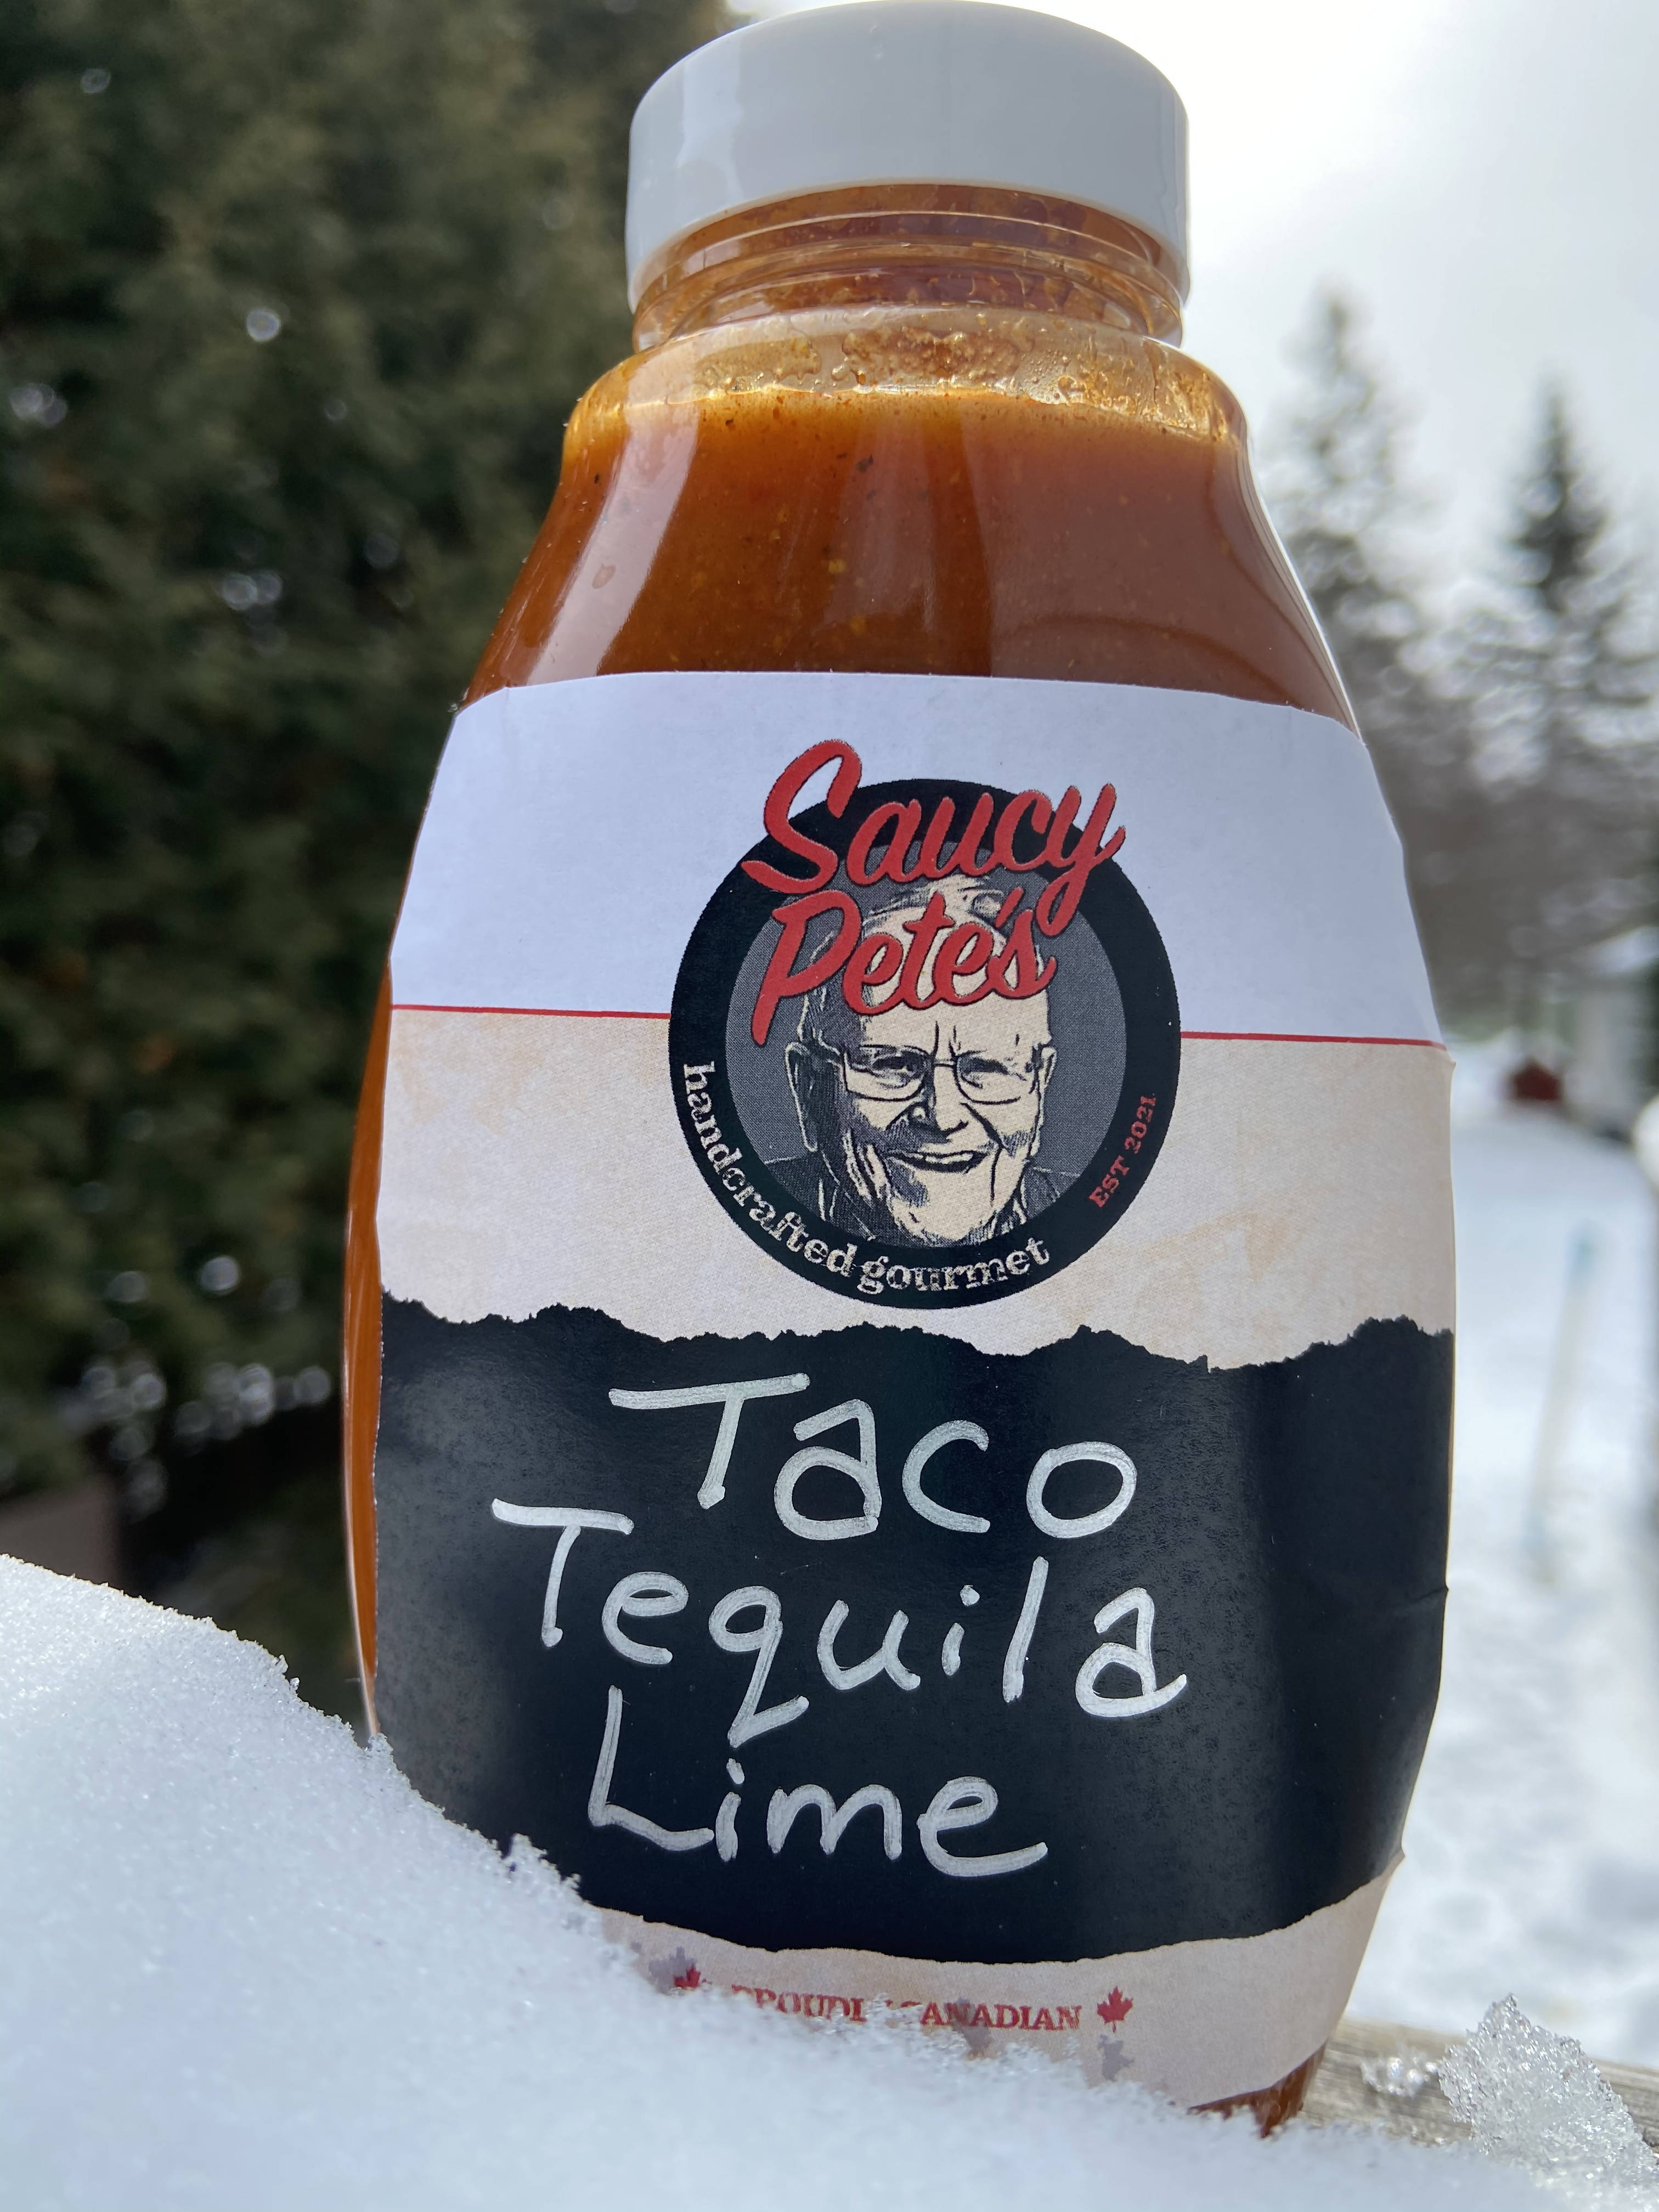 Taco Tequila Lime